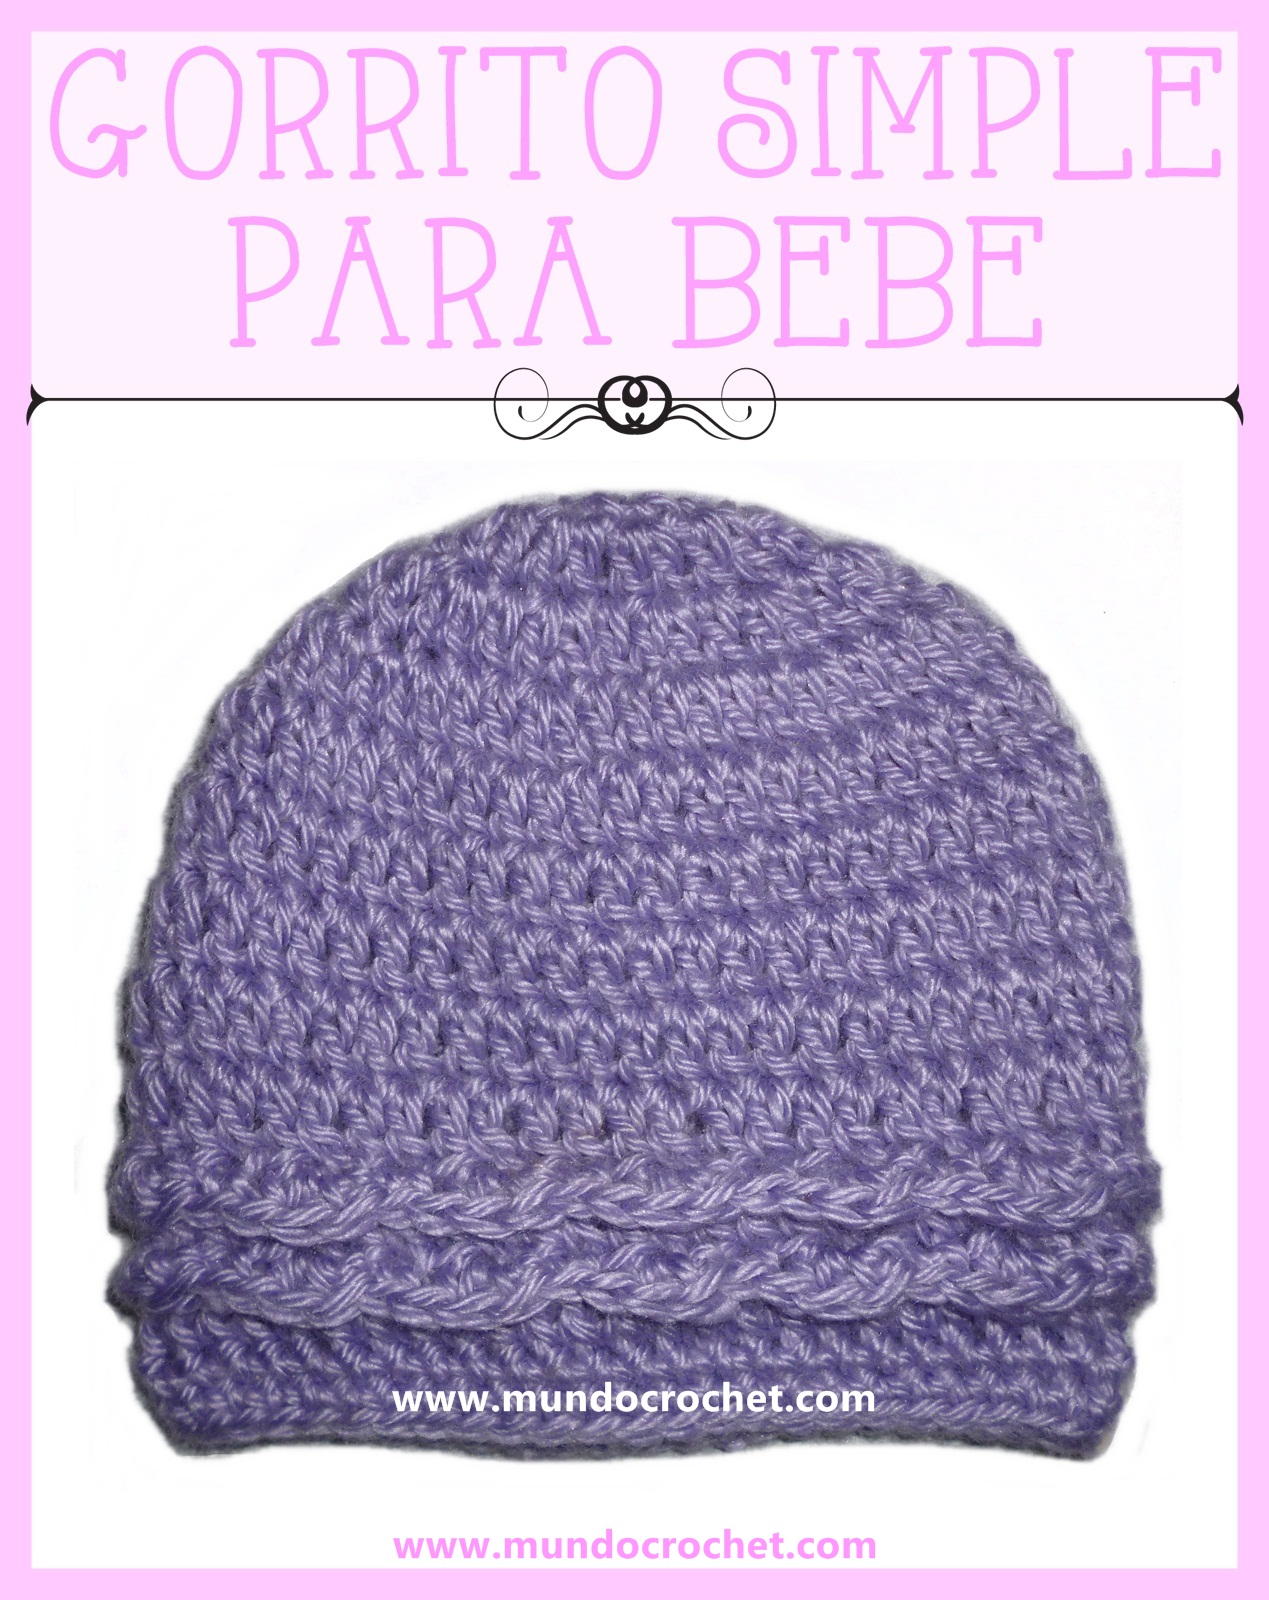 Gorro simple para bebe a Crochet